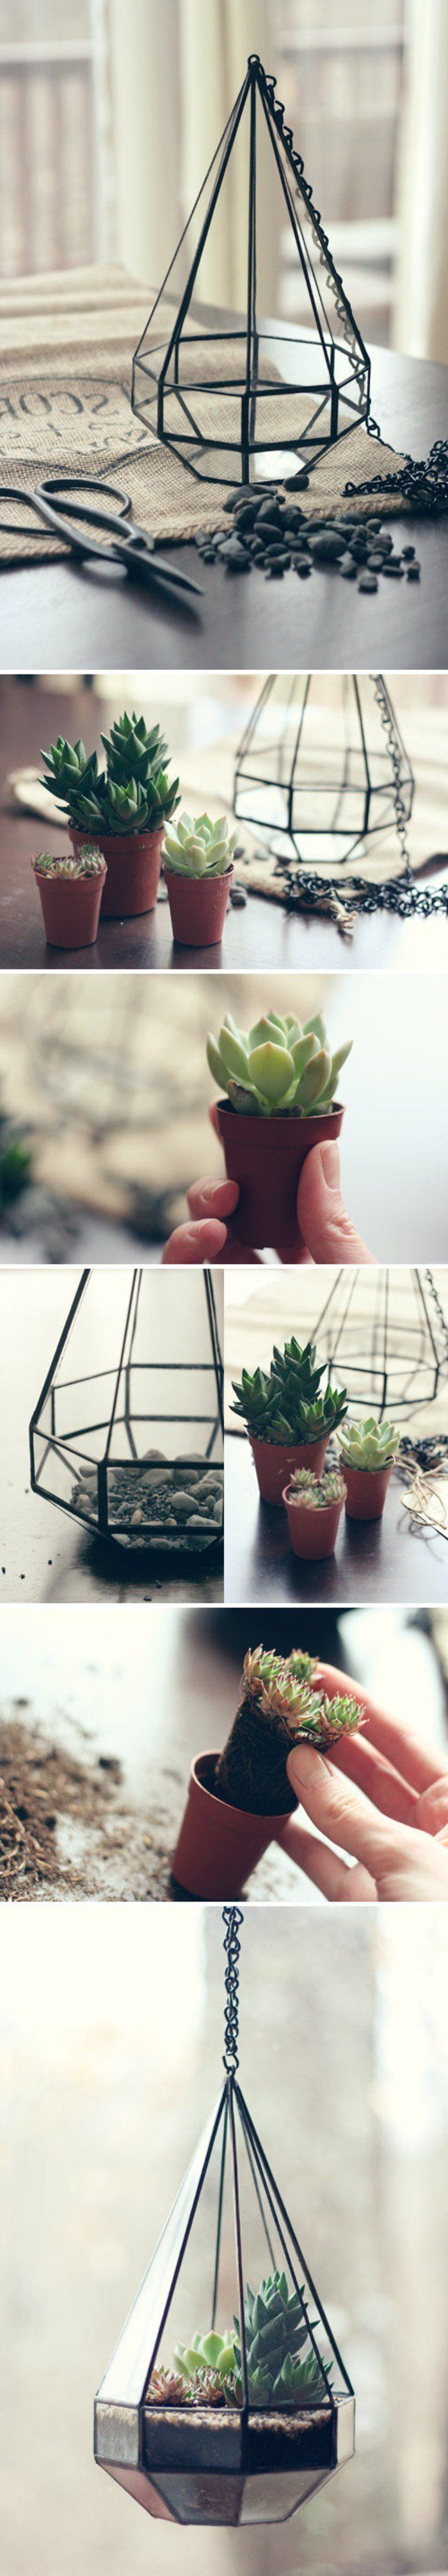 Terrarium for plants  tutorial to do it and more than 70 super models